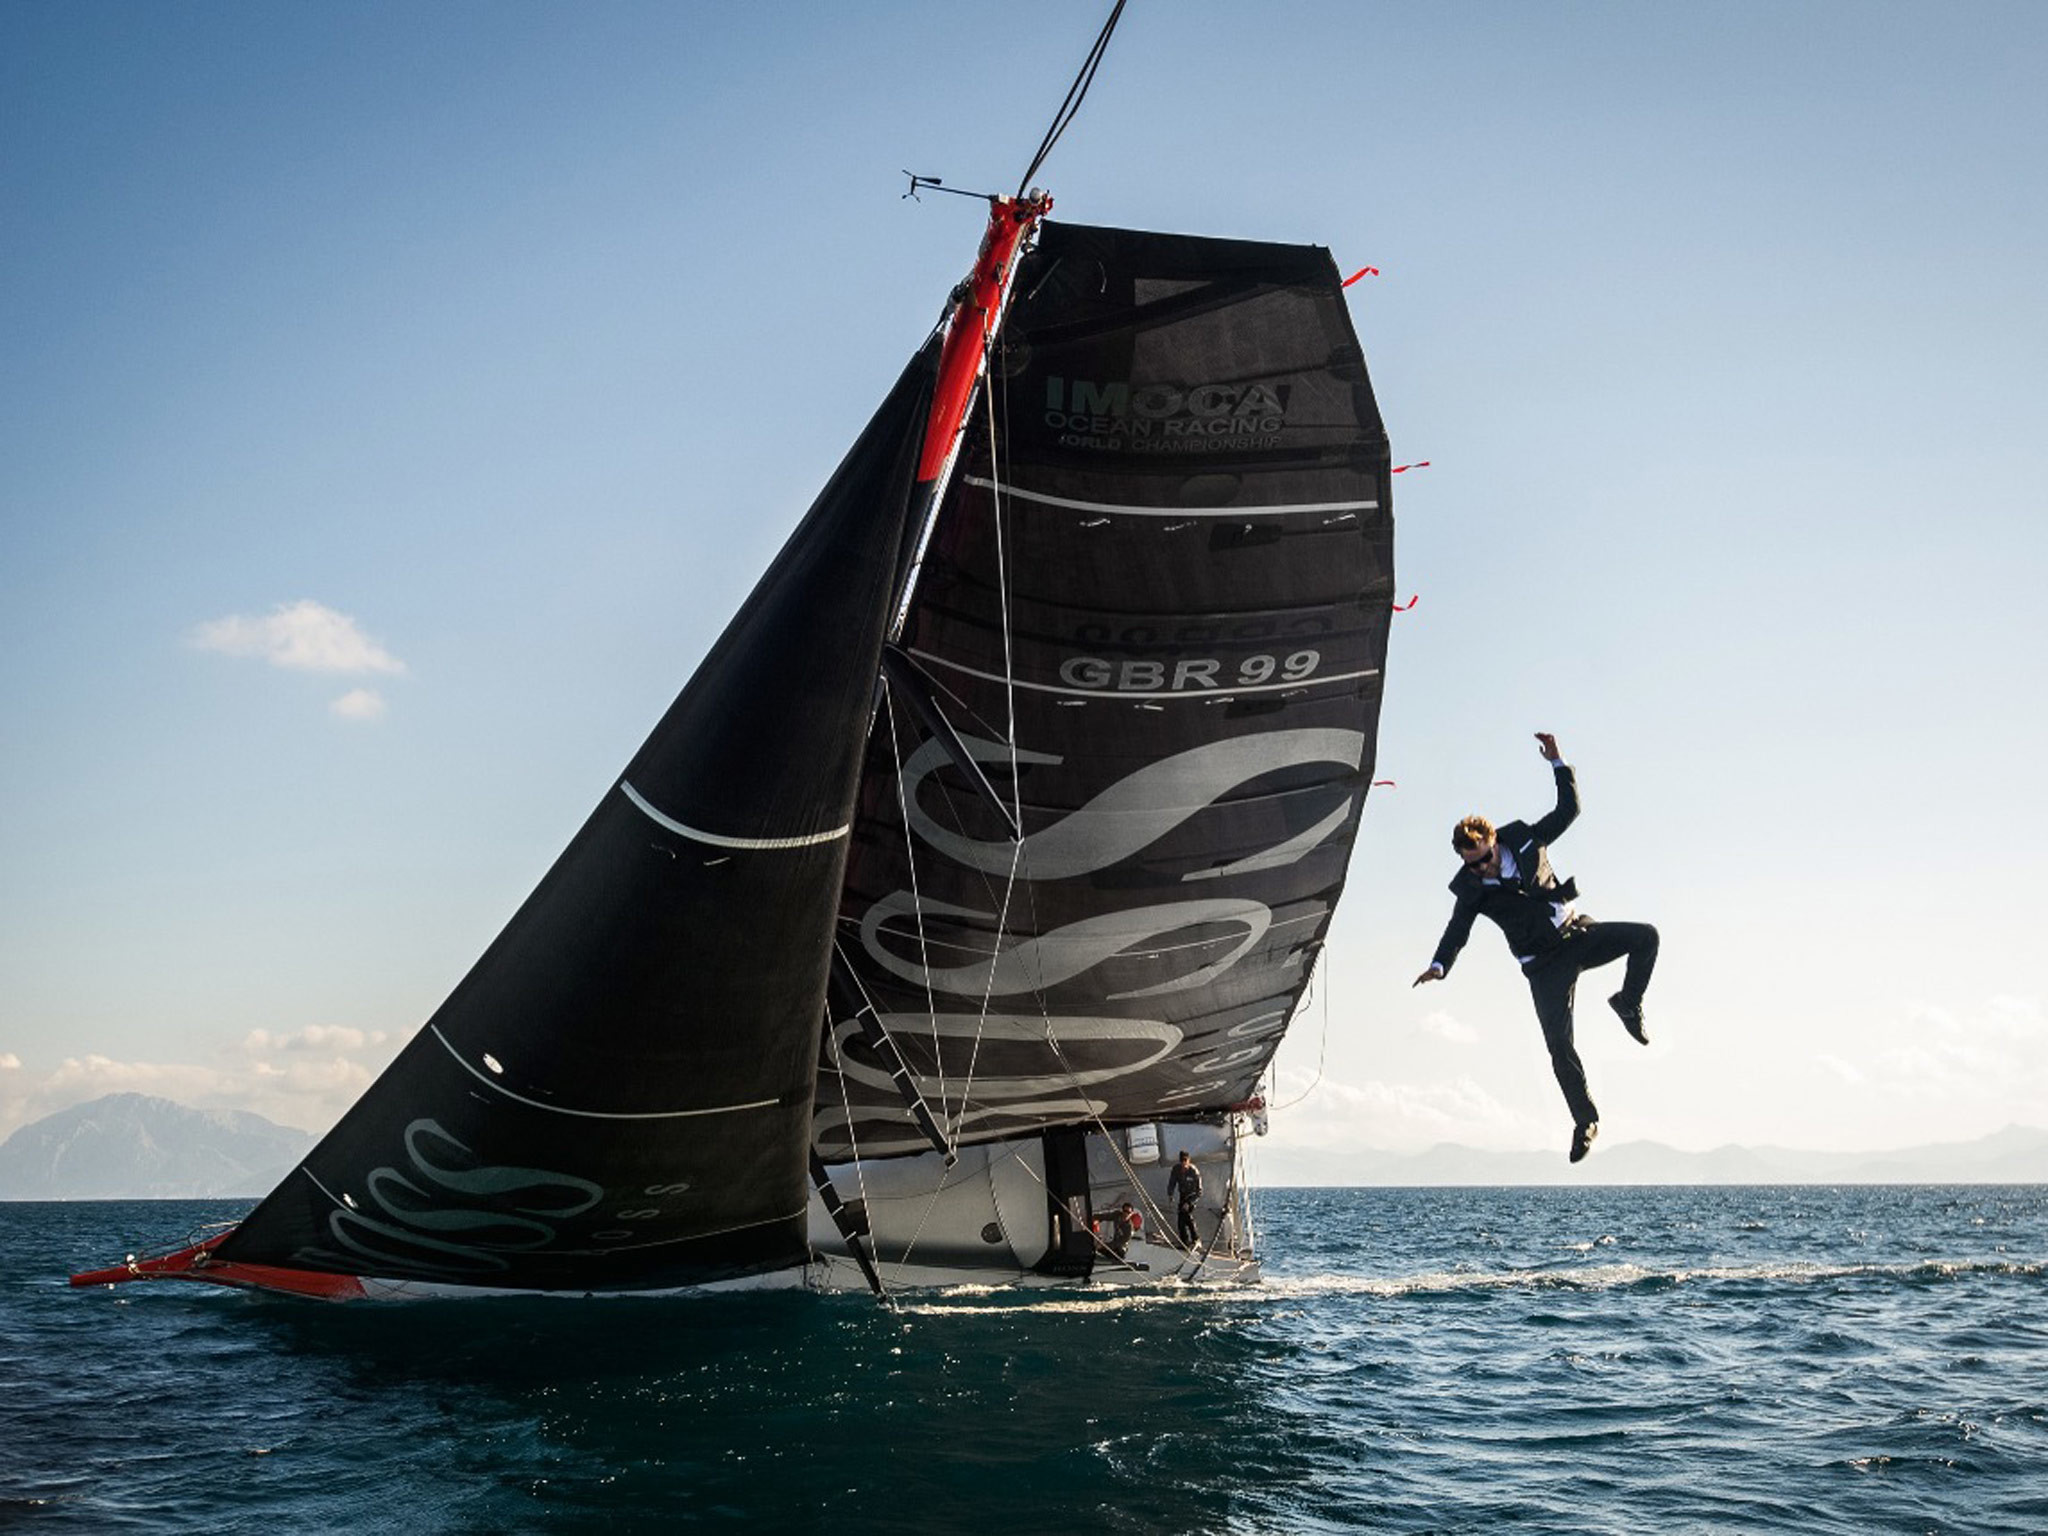 2048x1536 British yachtsman performs dare-devil jump from top of moving vessel whilst  wearing a suit - at least it's water proof | The Independent